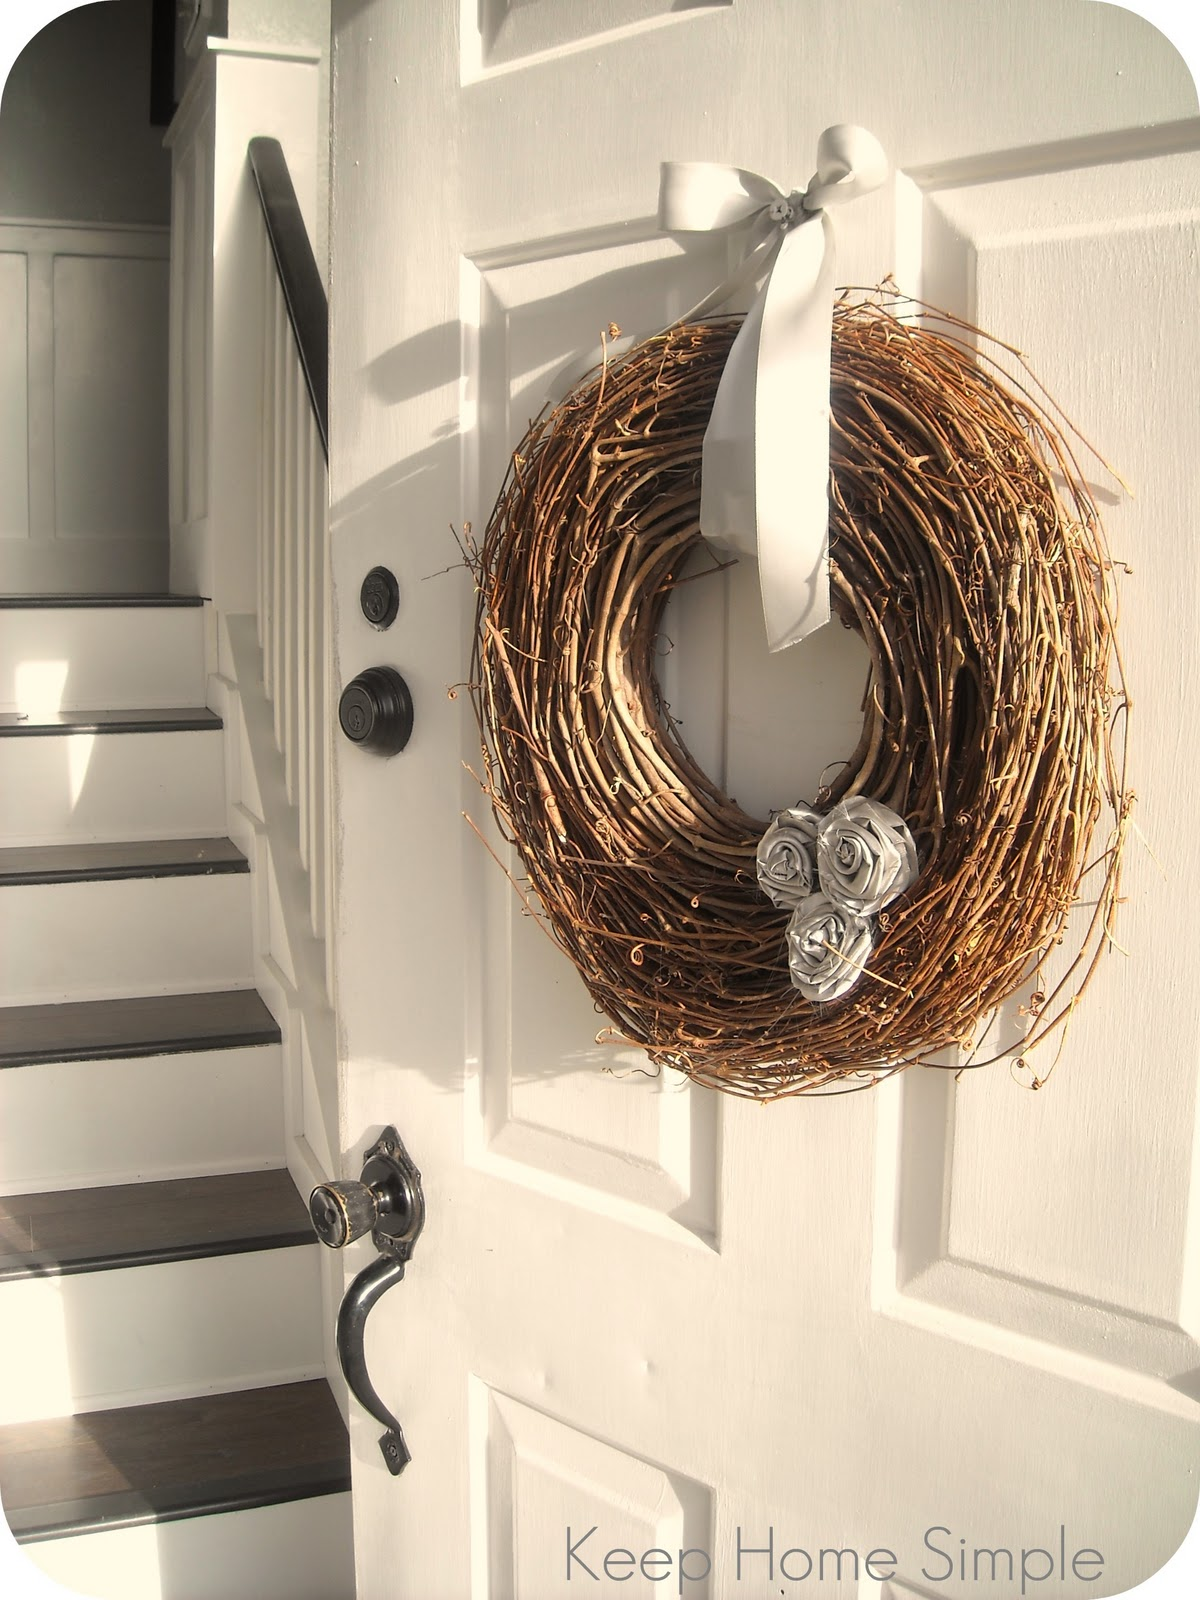 Keep Home Simple New Entry Light: Keep Home Simple: Vine Wreath